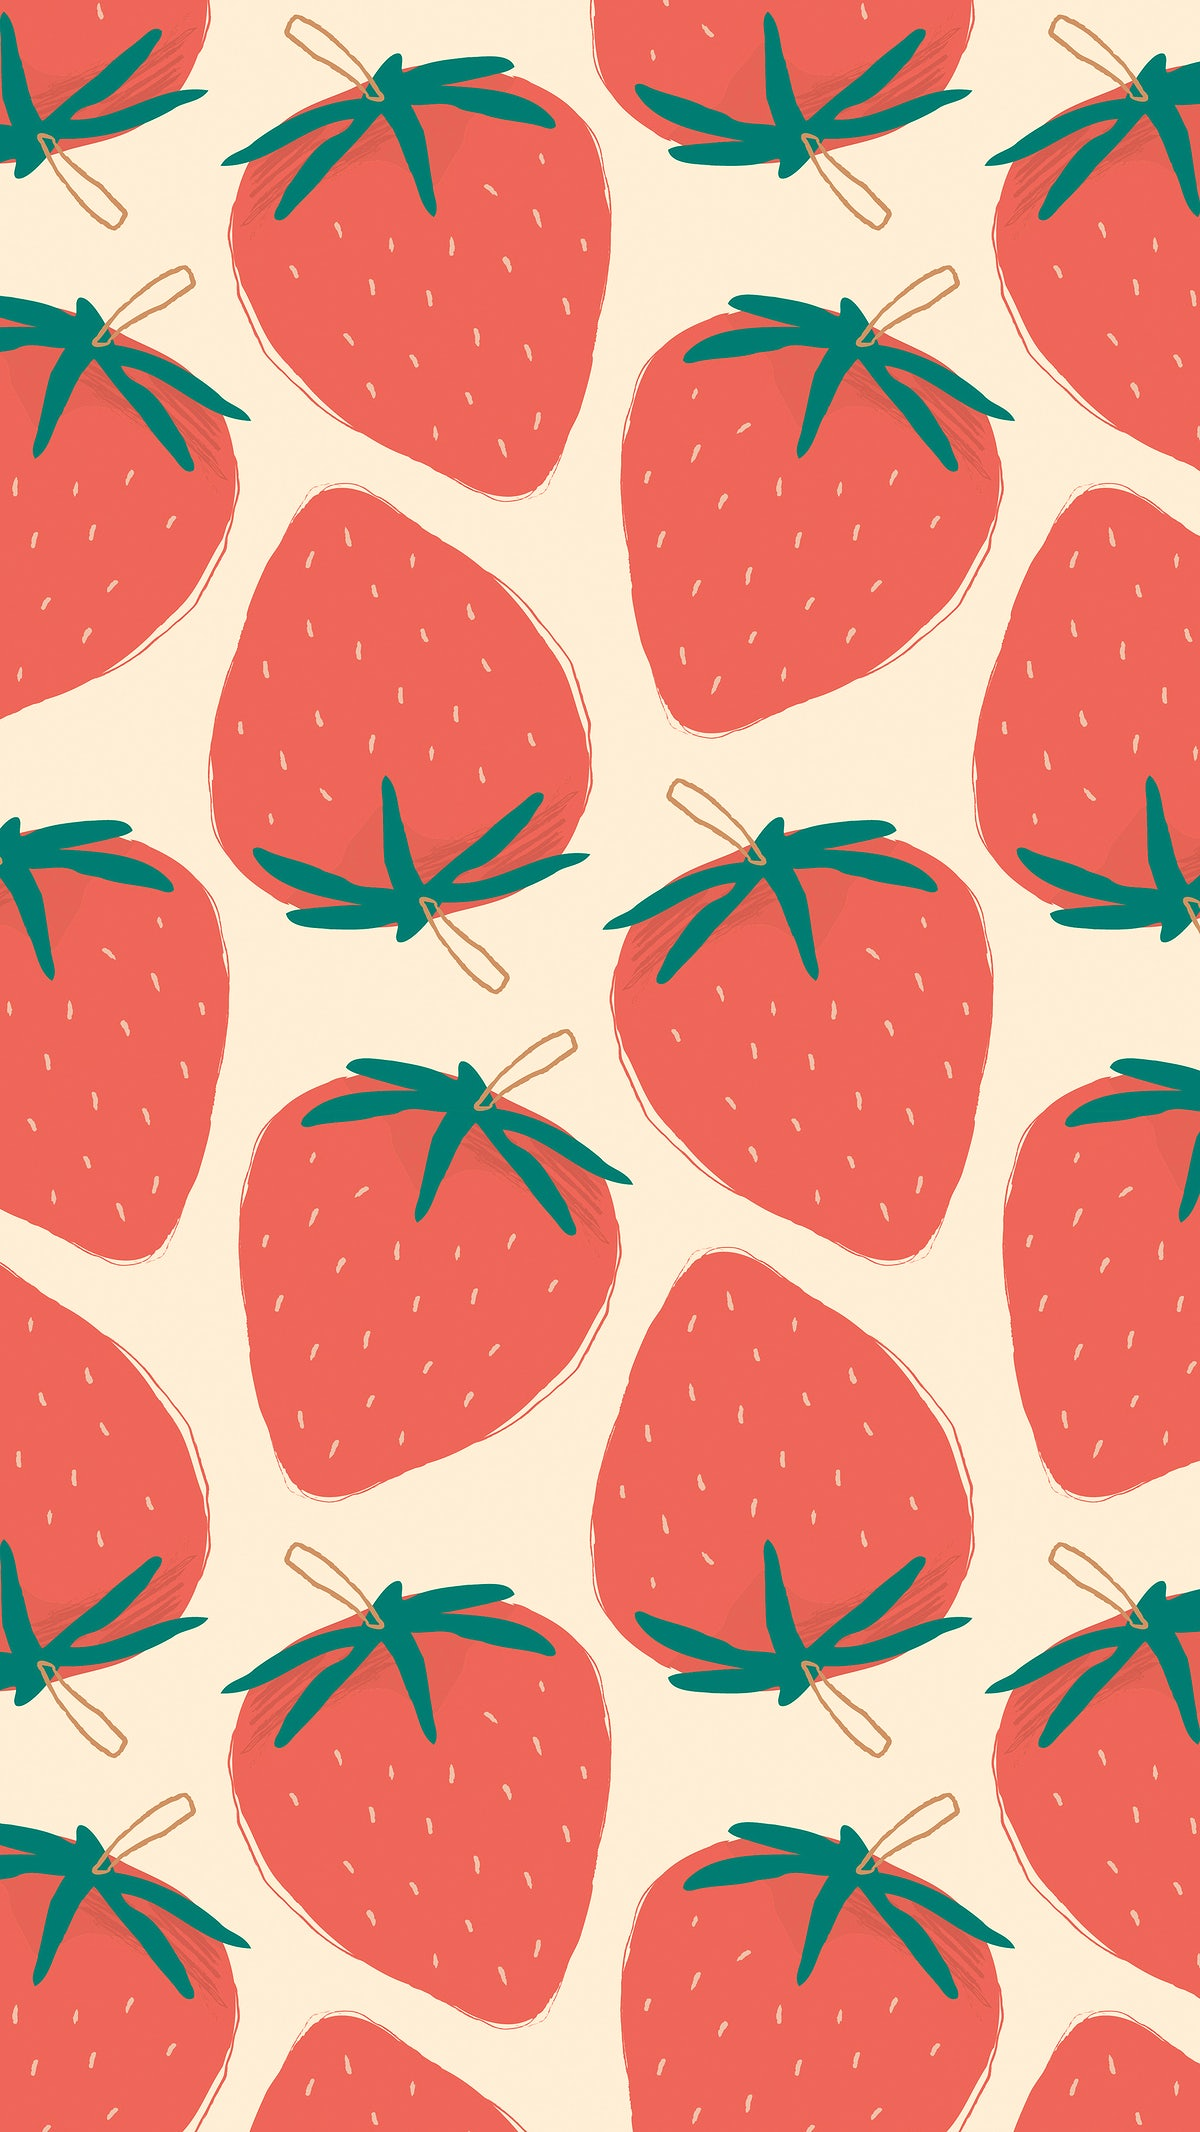 Cute Strawberry Fruit Pattern Pastel Background The pink lady with the pink dog. download premium illustration of cute strawberry fruit pattern pastel